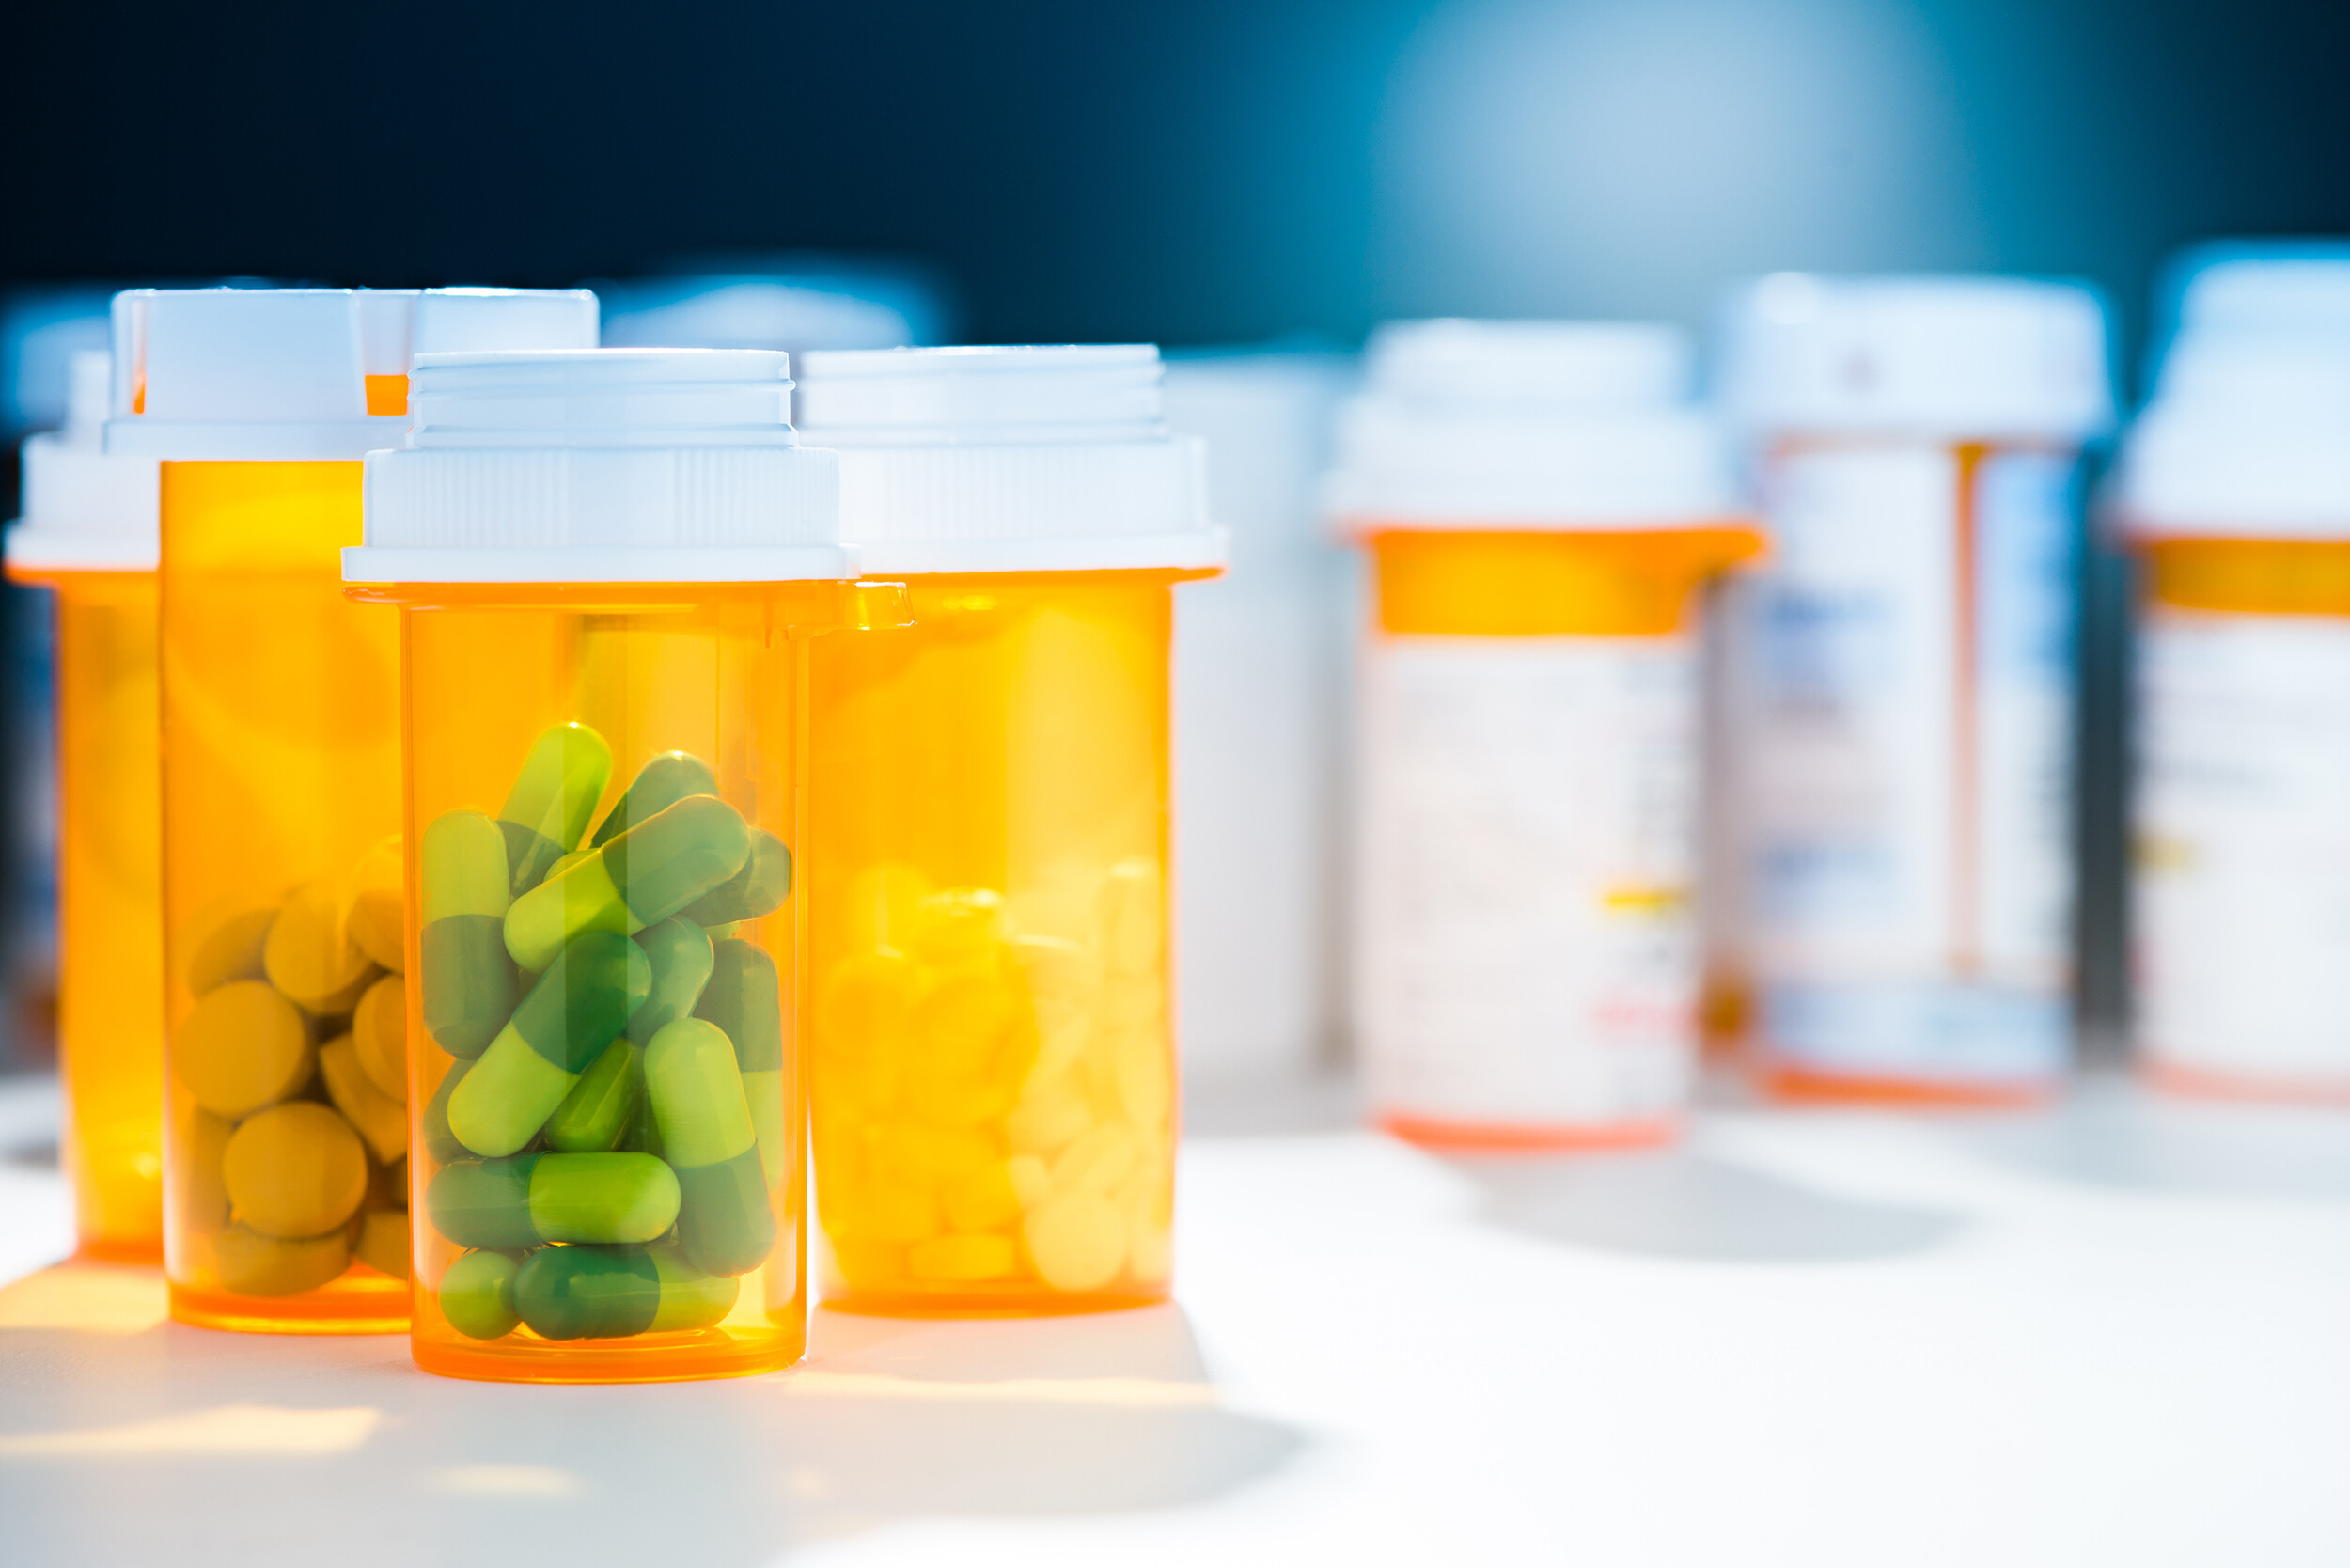 Stopping antidepressants may lead to relapse, study finds. Here's what you can do